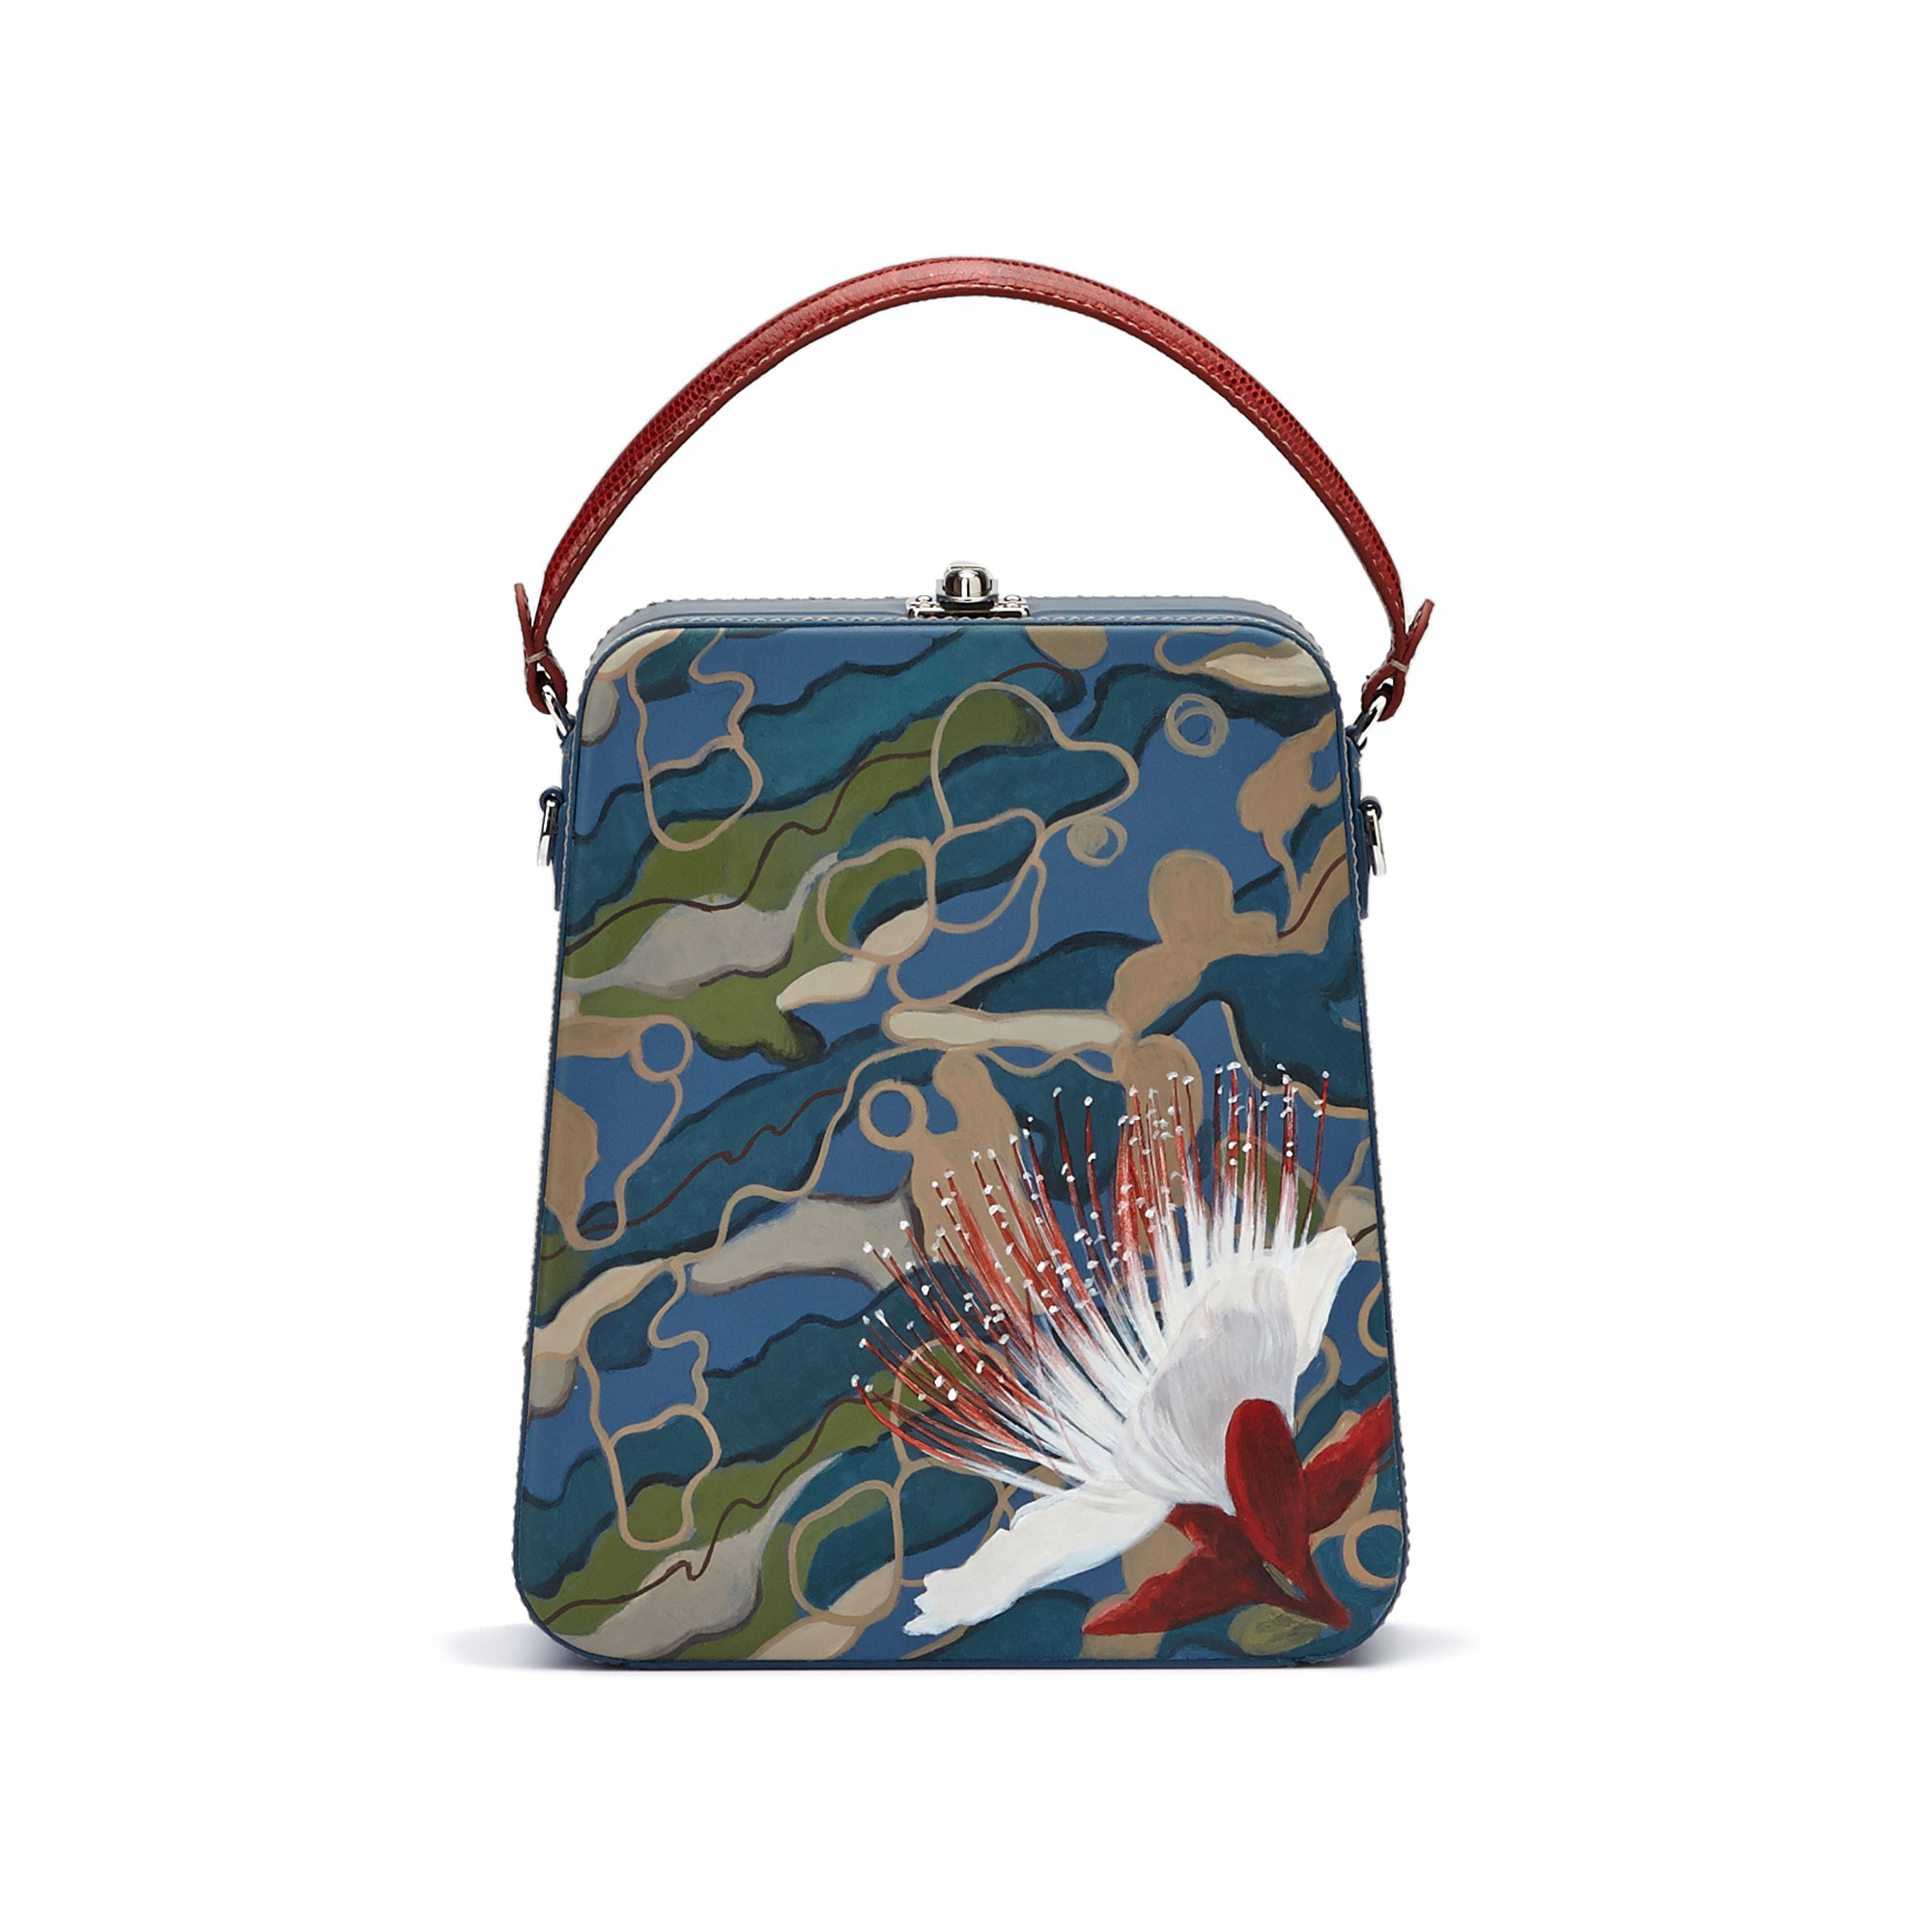 The camouflage effect with hand painted flower french calf Tall Bertoncina bag by Bertoni 1949 01